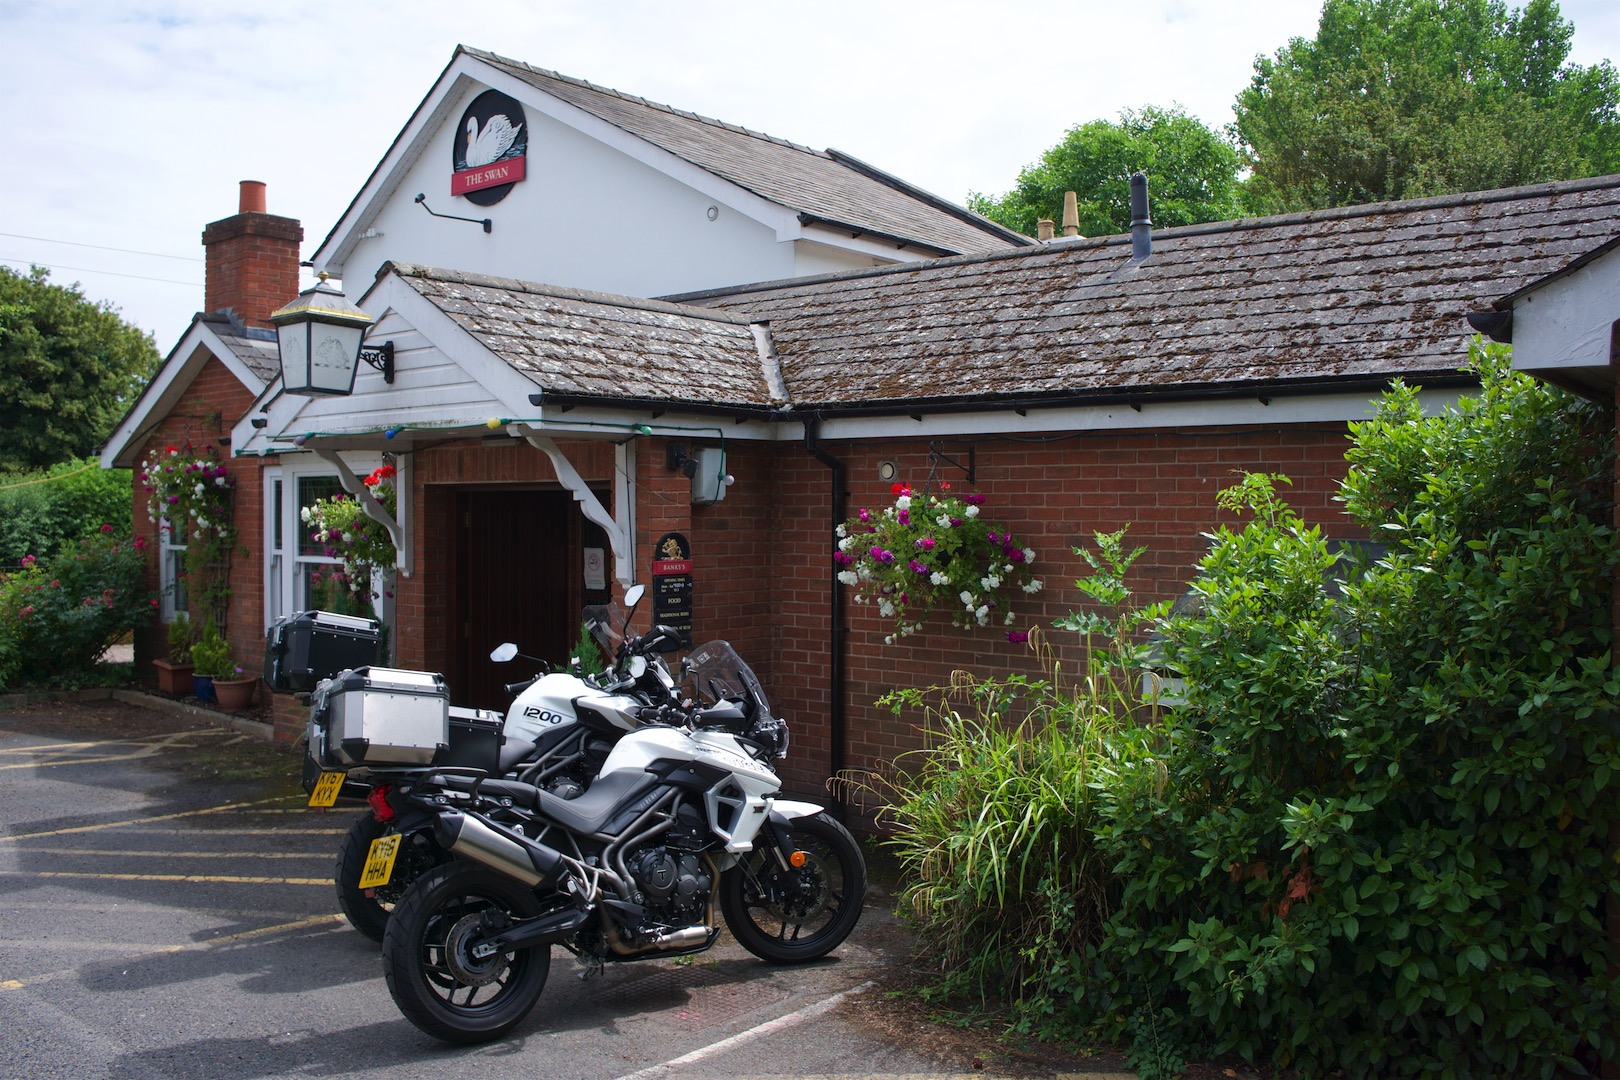 hight resolution of swann inn hereford review swan inn in hereford triumph tiger 1200 xca revioew